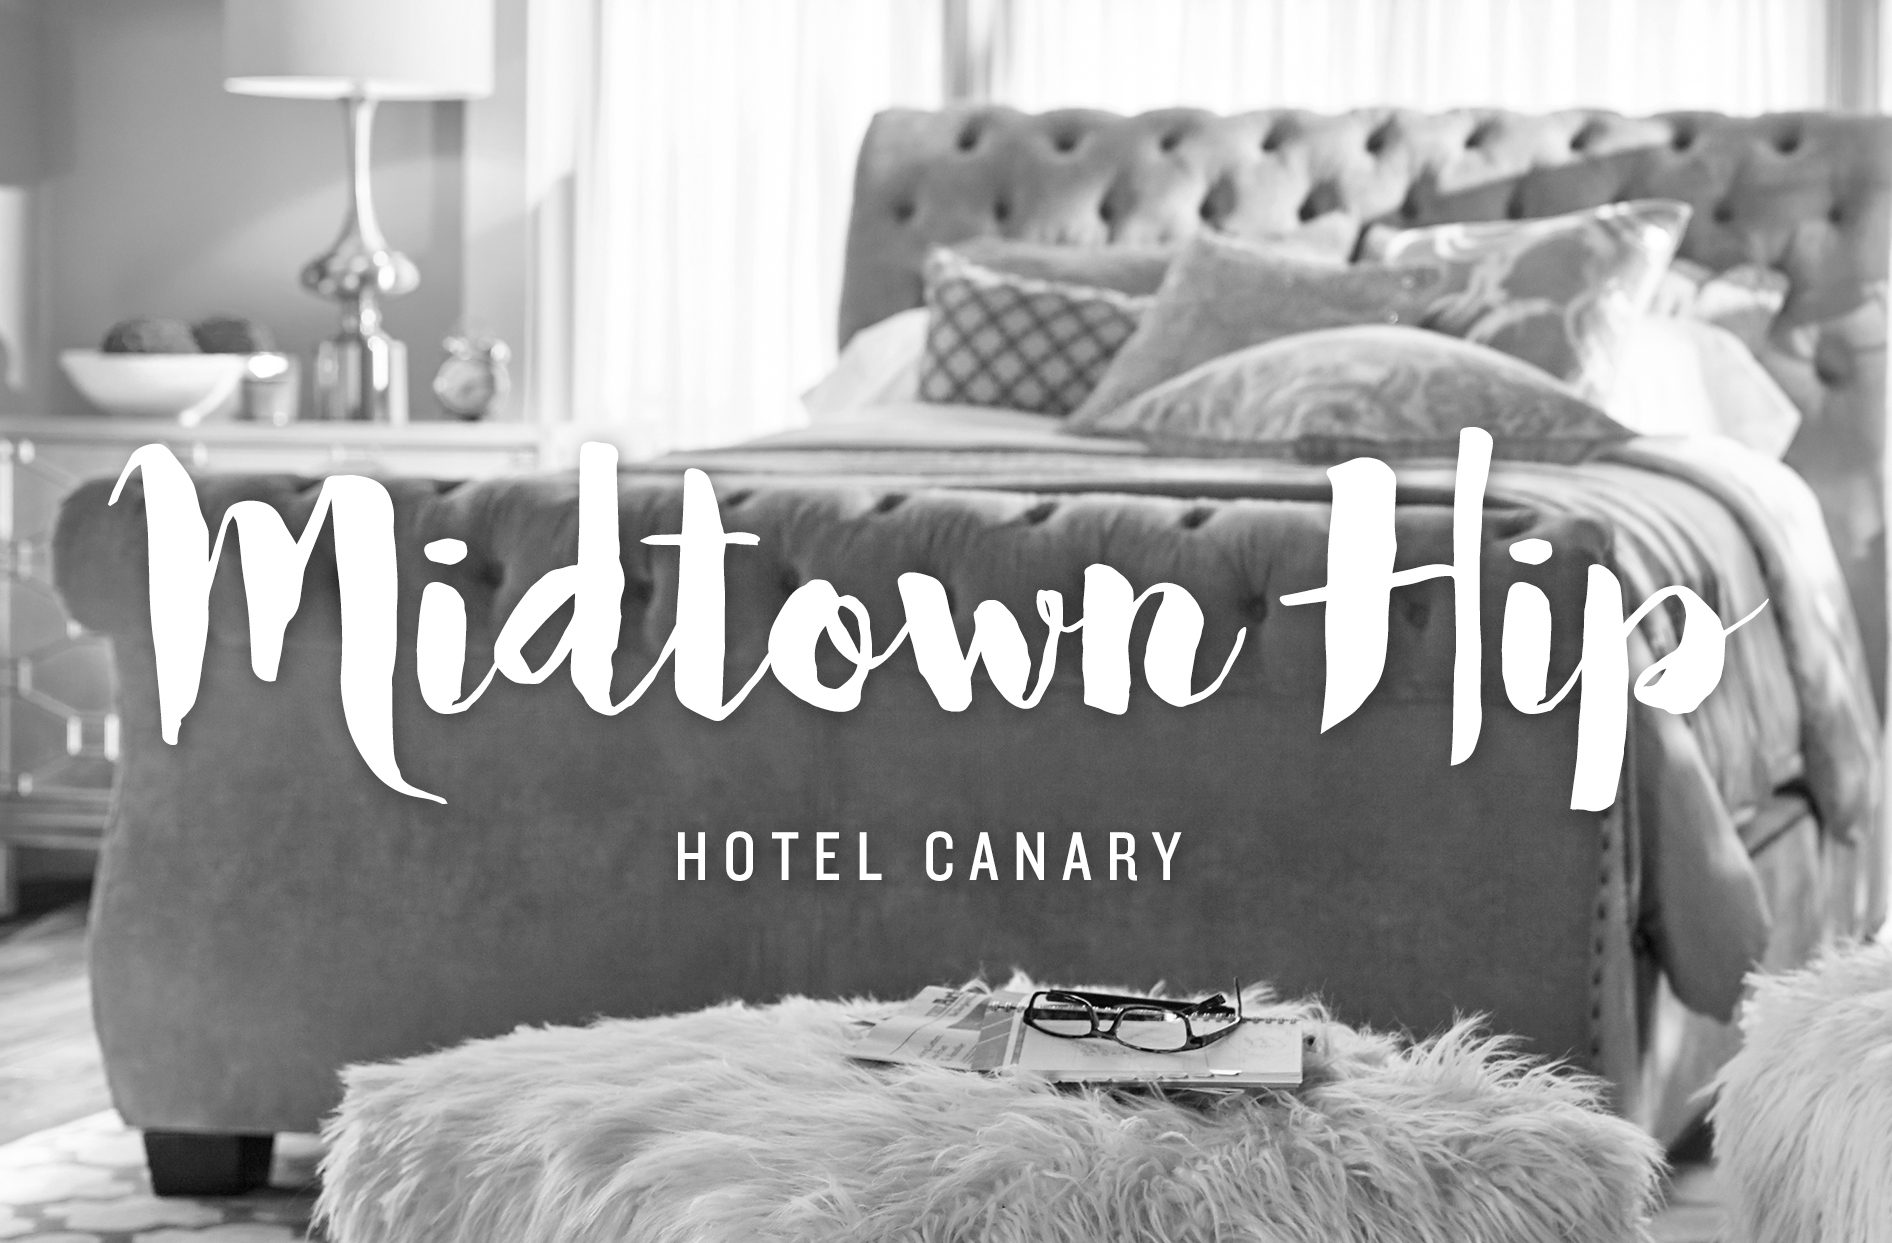 explore the midtown-hip vibe inside the hotel canary collection